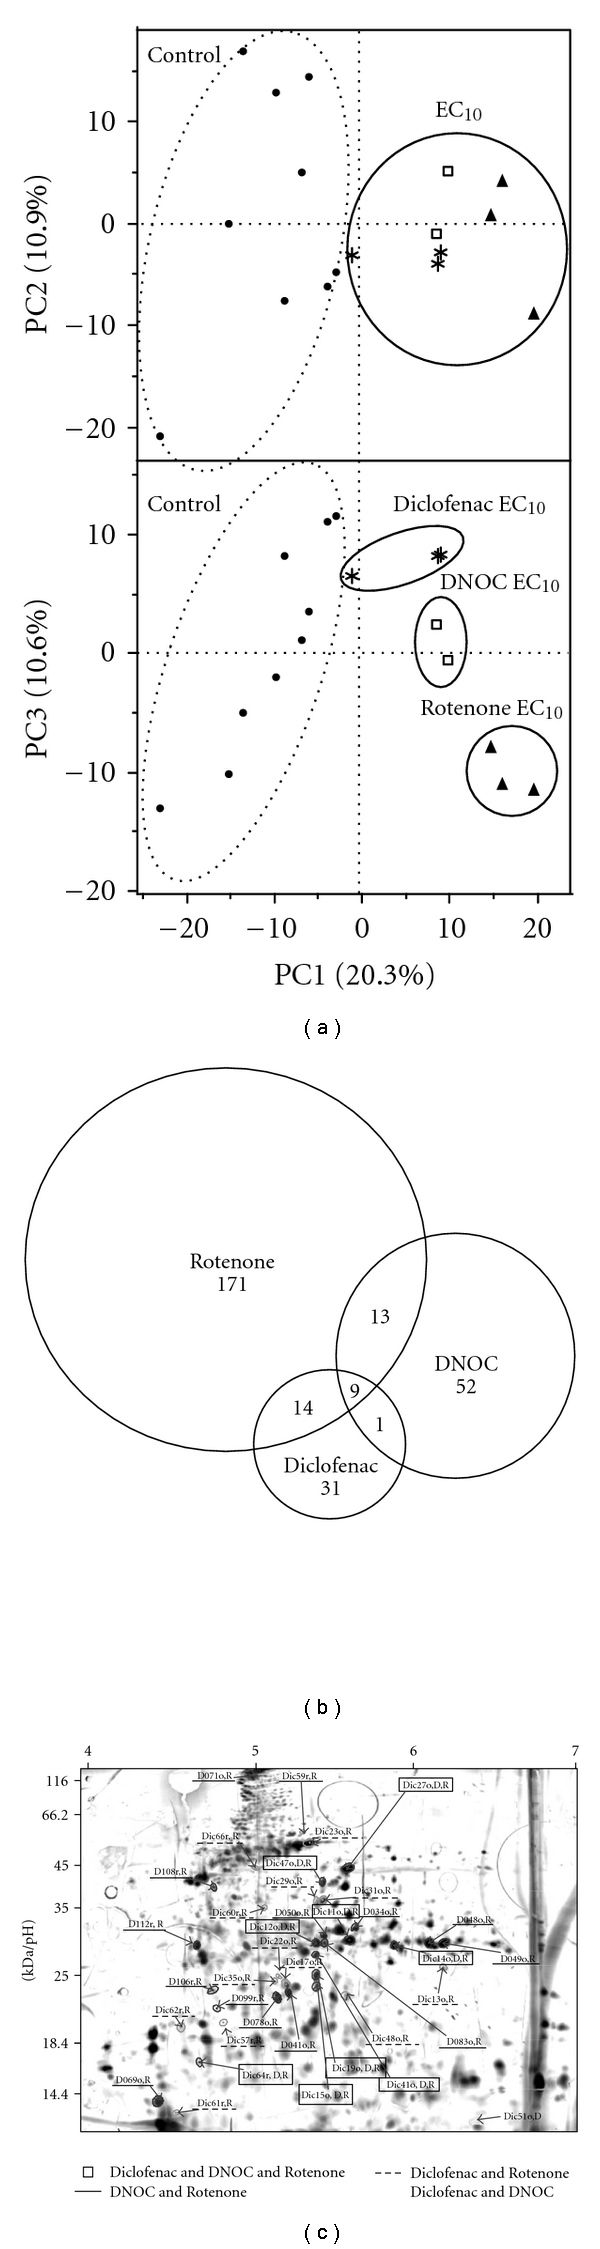 Comparison of results from toxicoproteomics experiments with Rotenone, DNOC, and Diclofenac exposure. (a) PCA scores when all samples are included in PCA analysis. (b) Venn-Diagramm based on results from substance-specific univariate spot-to-spot analysis. Most of the protein spots changed specifically. 9 proteins concurrently changed after Rotenone, DNOC, and Diclofenac treatment. Moreover, 13 proteins simultaneously changed after Rotenone and DNOC treatment, and 14 proteins showed changed expression levels at exposure against Diclofenac or Rotenone. Only one protein was found to be changed in the larval protein samples after DNOC as well as Diclofenac treatment. (c) 2-DE gel from eleutheroembryonal protein samples. All proteins that significantly changed in expression in at least two toxicoproteomics experiments (treatment with either Rotenone, DNOC, or Diclofenac) are labelled: Protein labels of protein spots simultaneously altered in Rotenone, DNOC, and Diclofenac experiments are framed (□), in Rotenone and DNOC experiments are underlined (—), in Rotenone and Diclofenac experiments are dashed (—), and in DNOC, and Diclofenac experiments are labelled by name only.